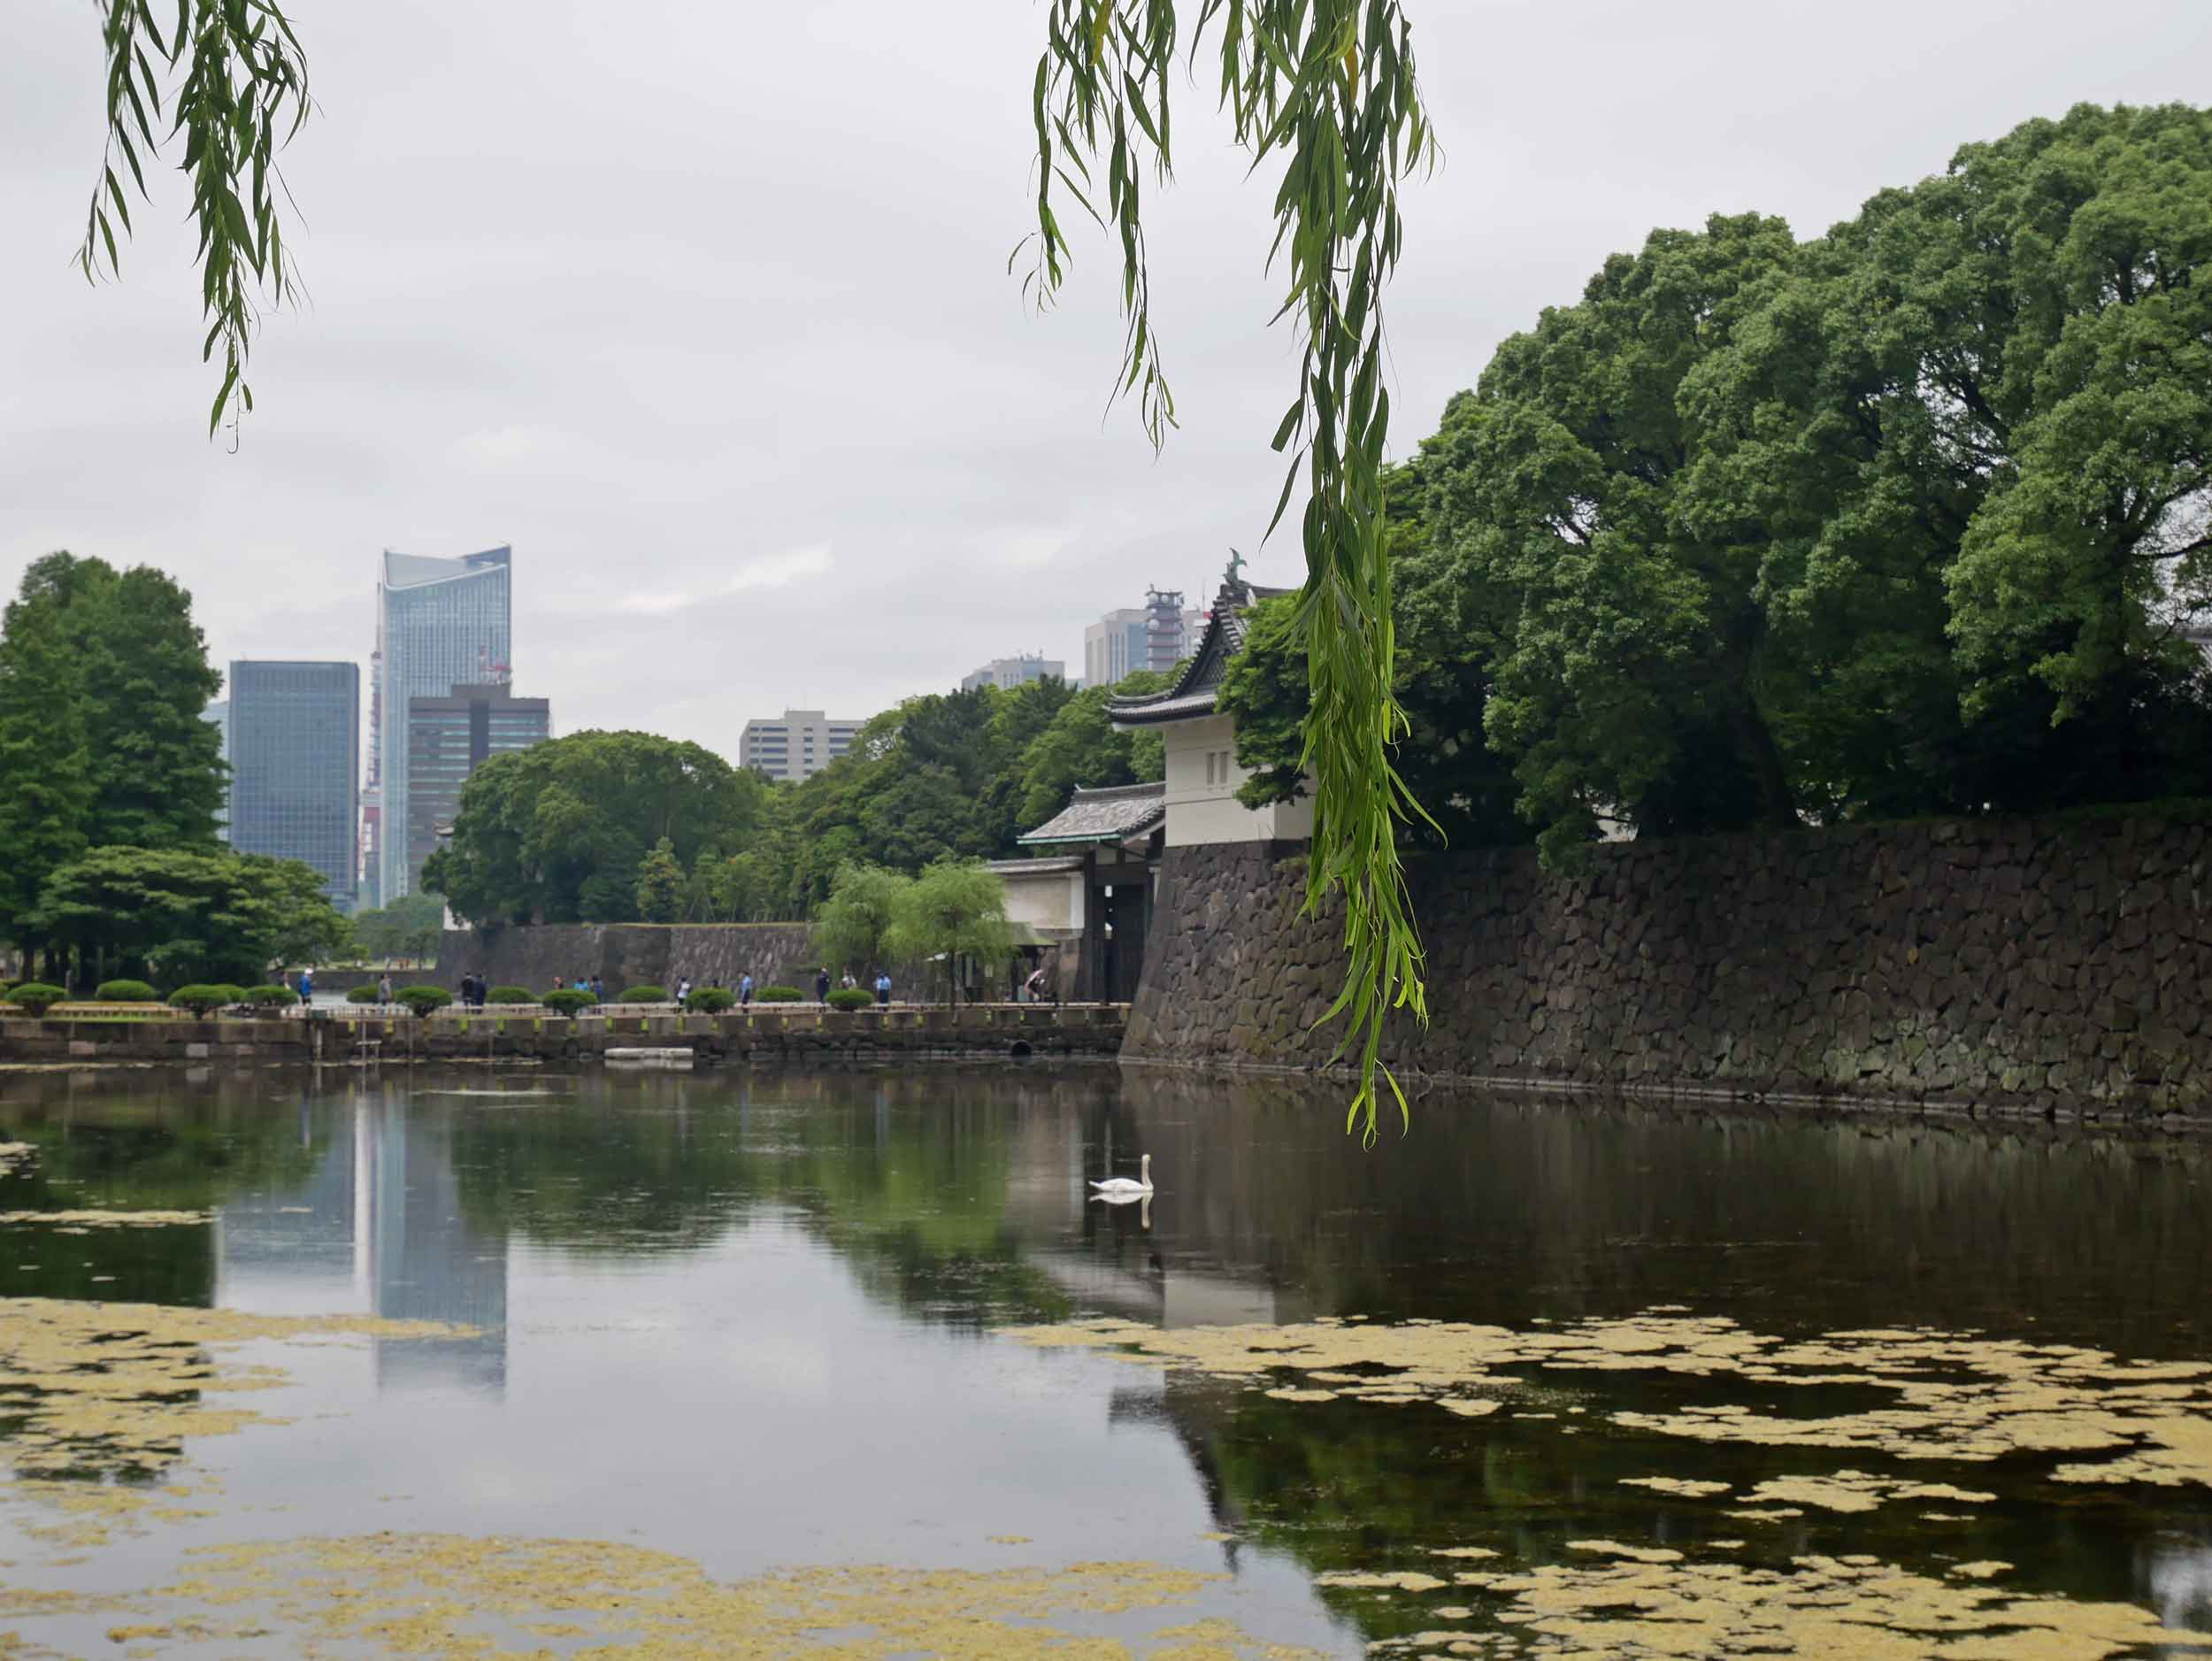 Tokyo's Imperial Palace Gardens is a respite within the chaos of the city (June 14).